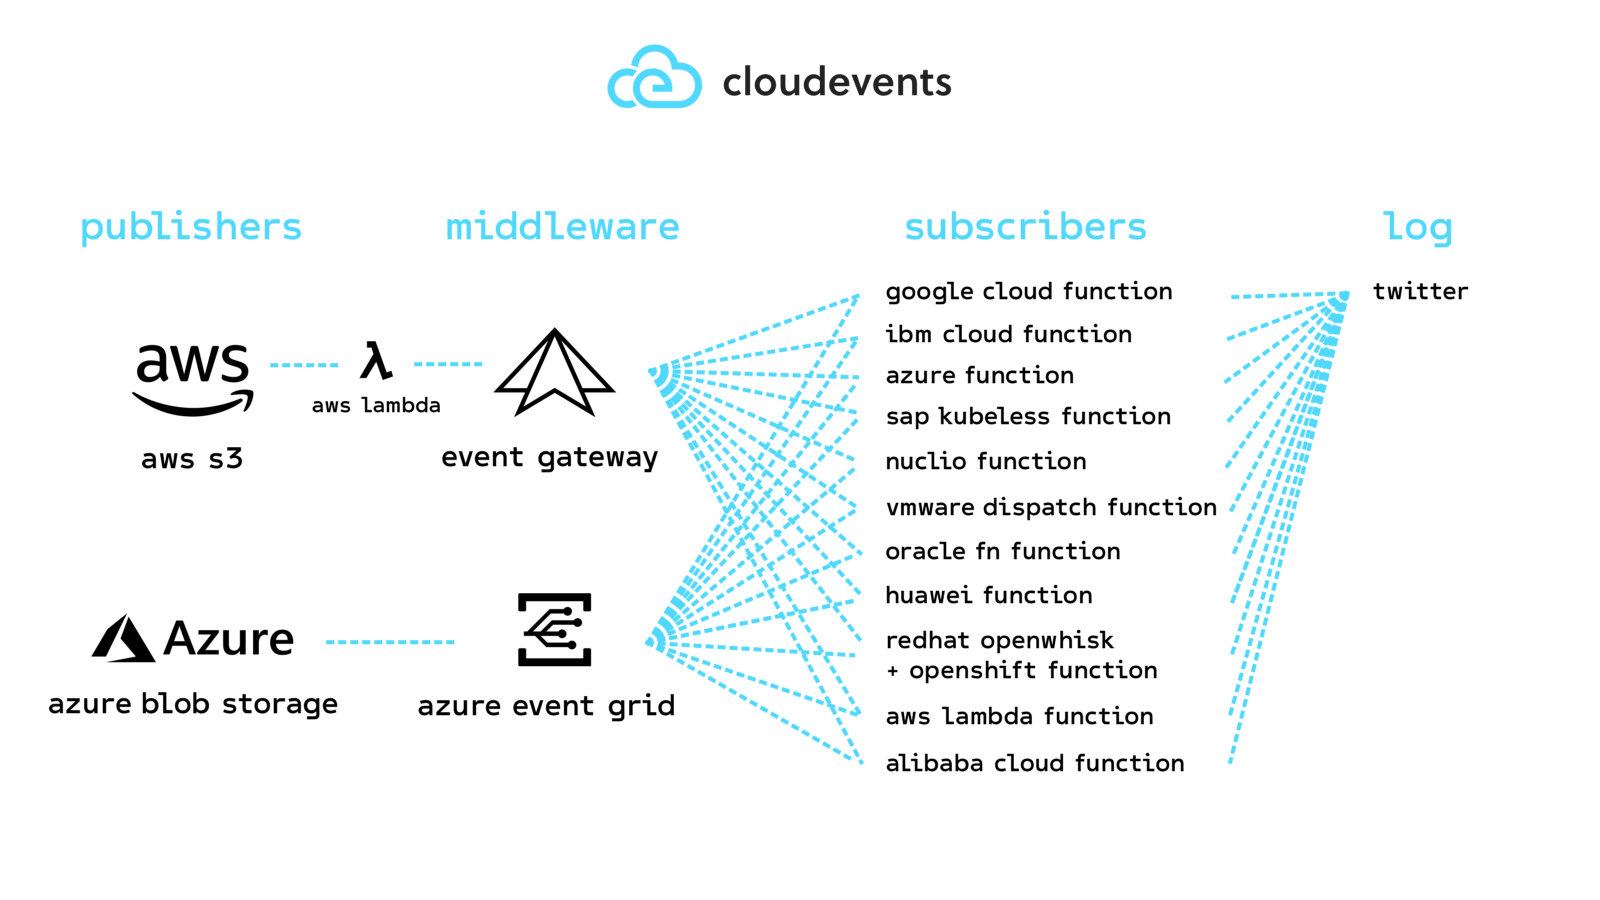 Introducing CloudEvents 0.1 – An open effort by Google, Microsoft, IBM and more